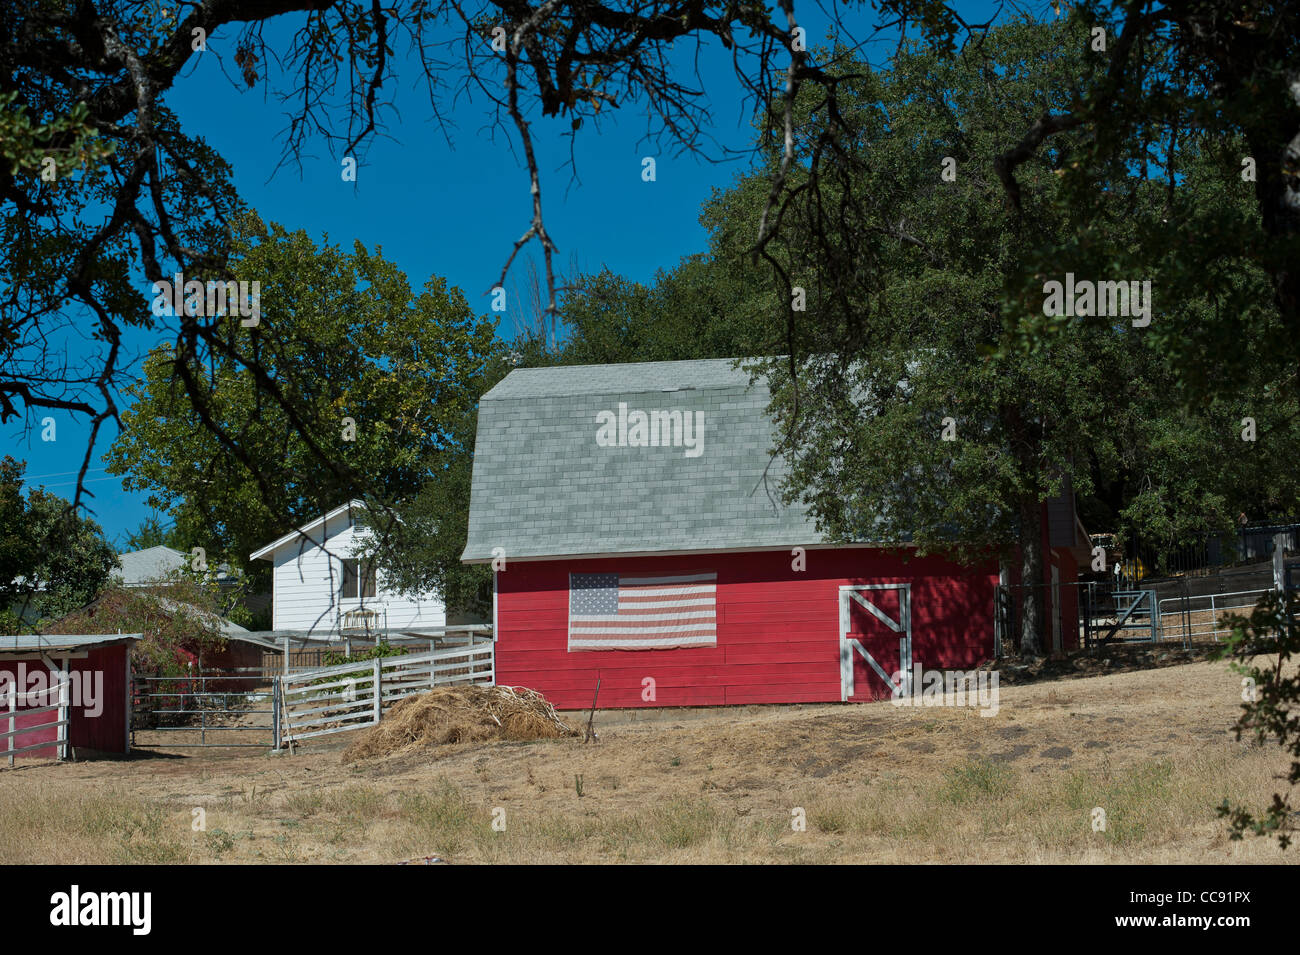 Farmhouse near Sutters Mill at Marshall Gold Discovery Site Coloma, California, USA - Stock Image